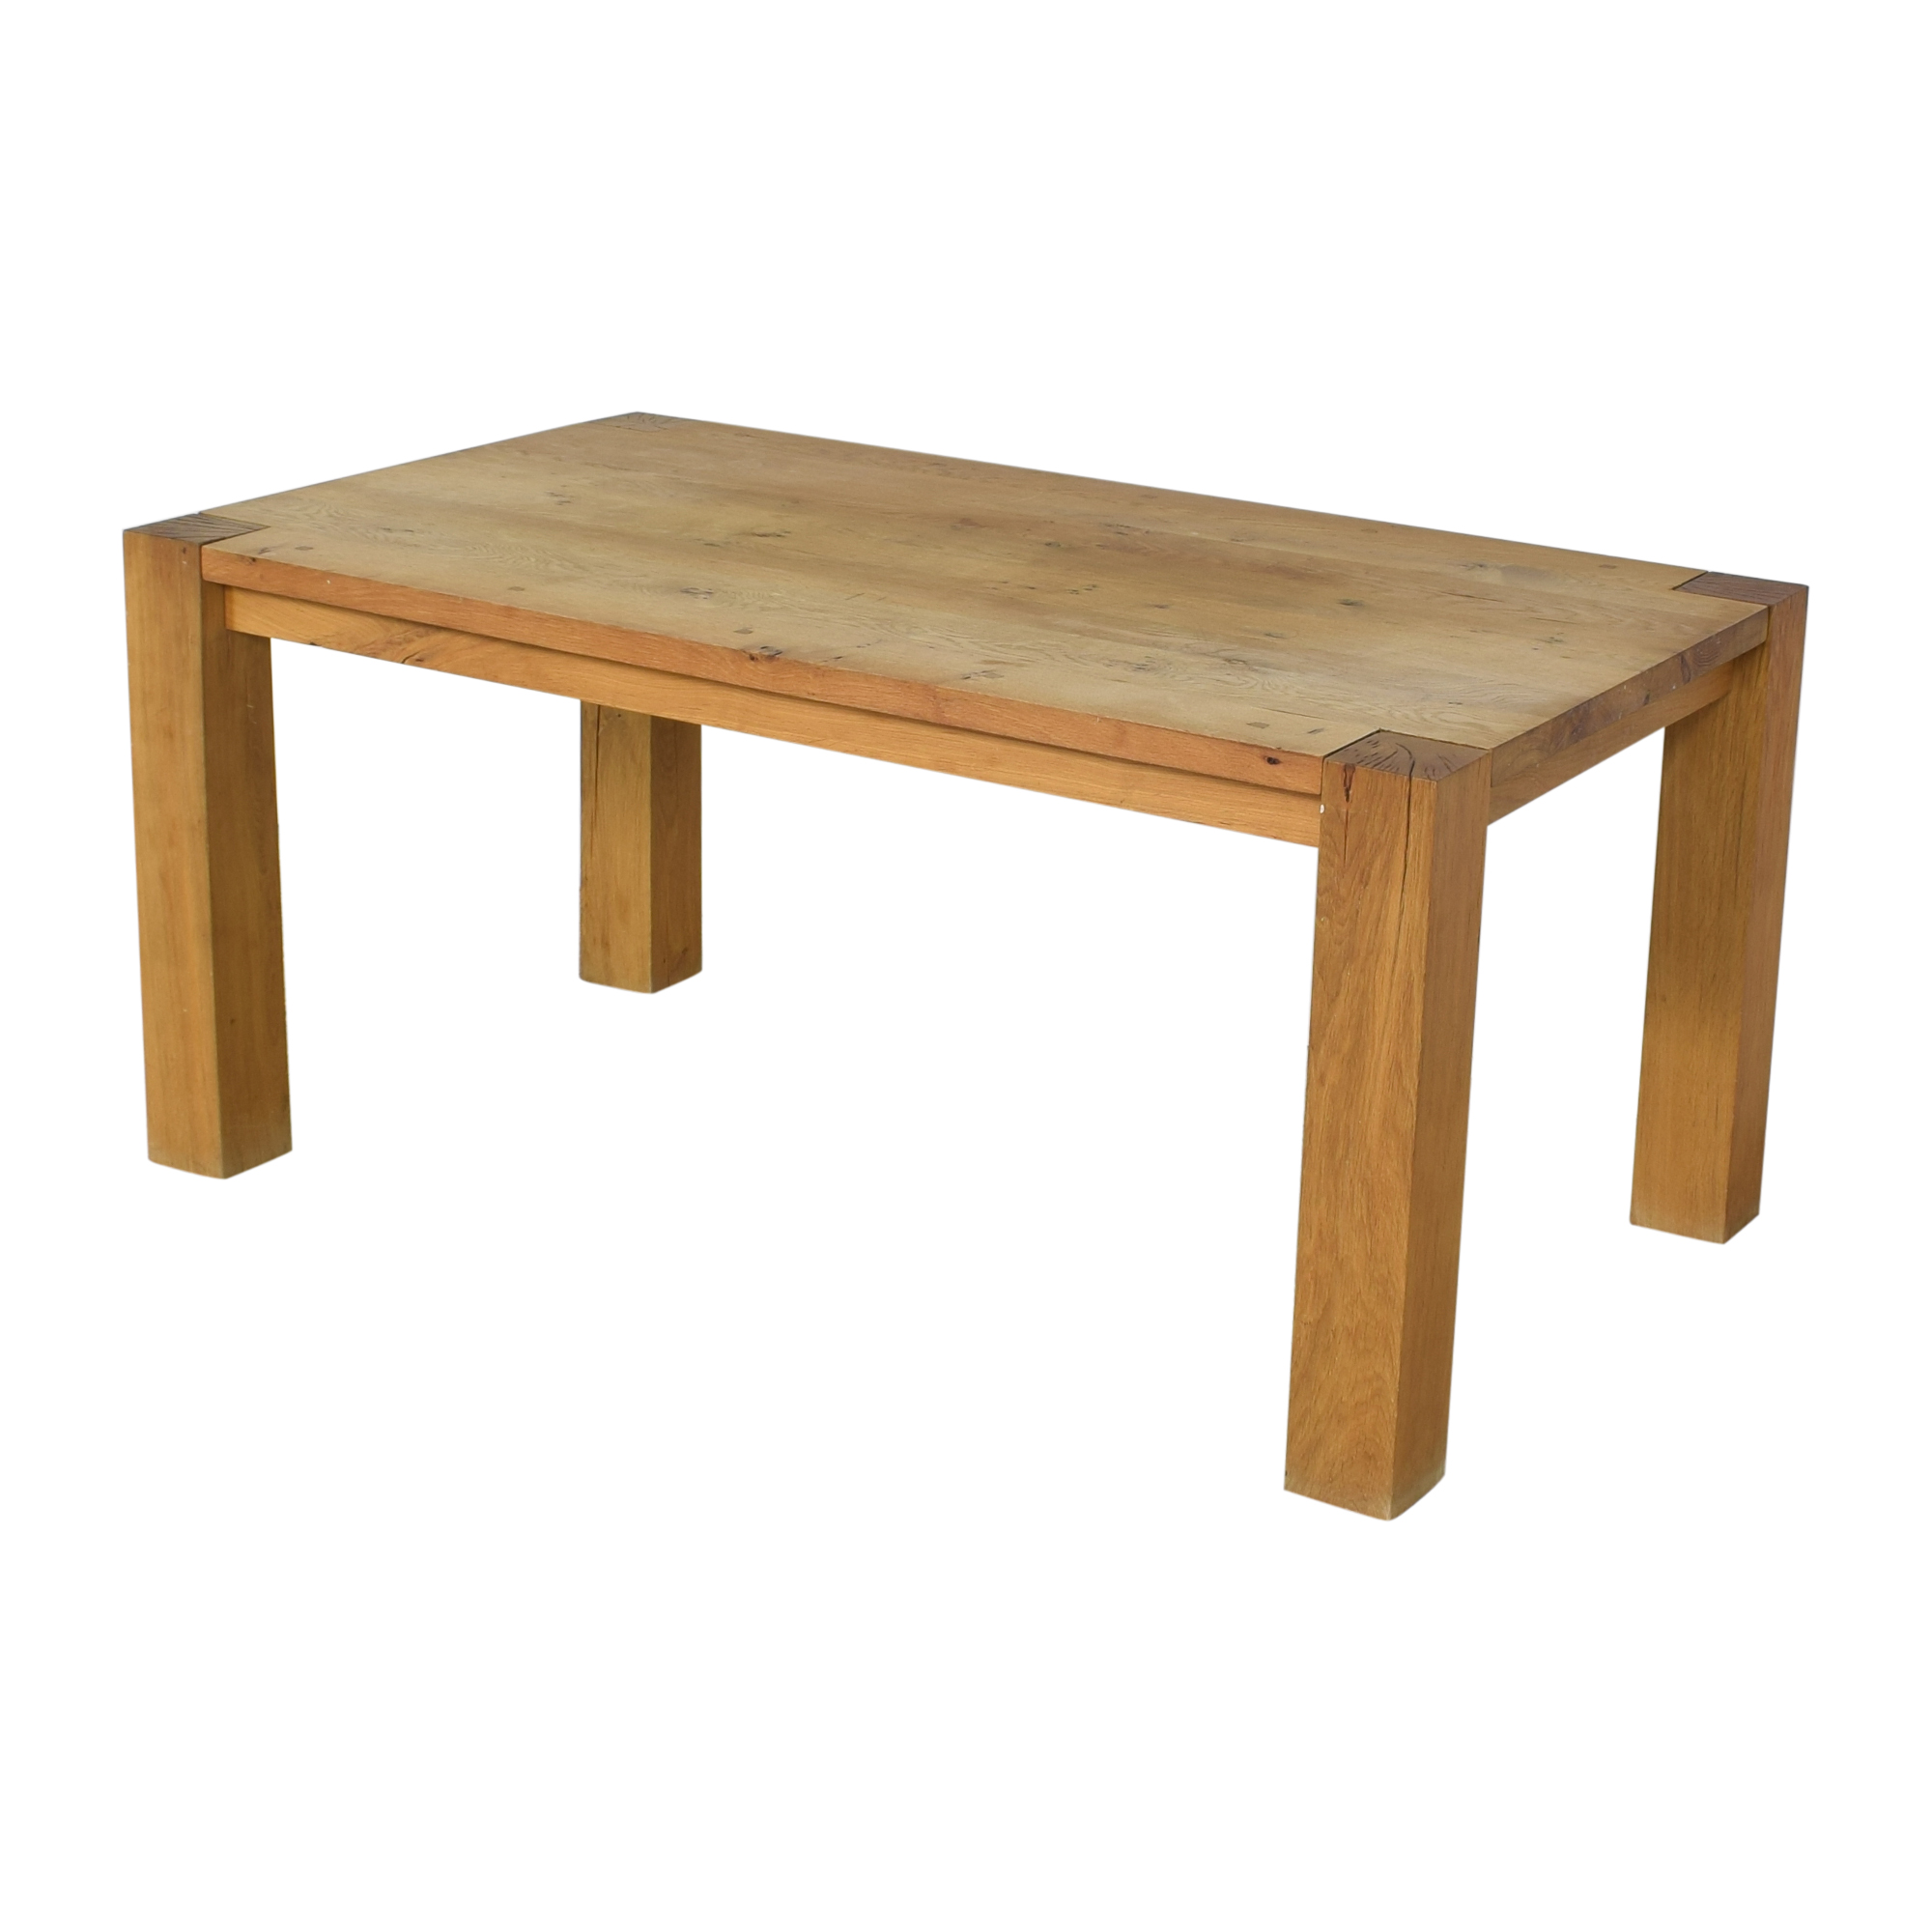 buy Crate & Barrel Big Sur Dining Table Crate & Barrel